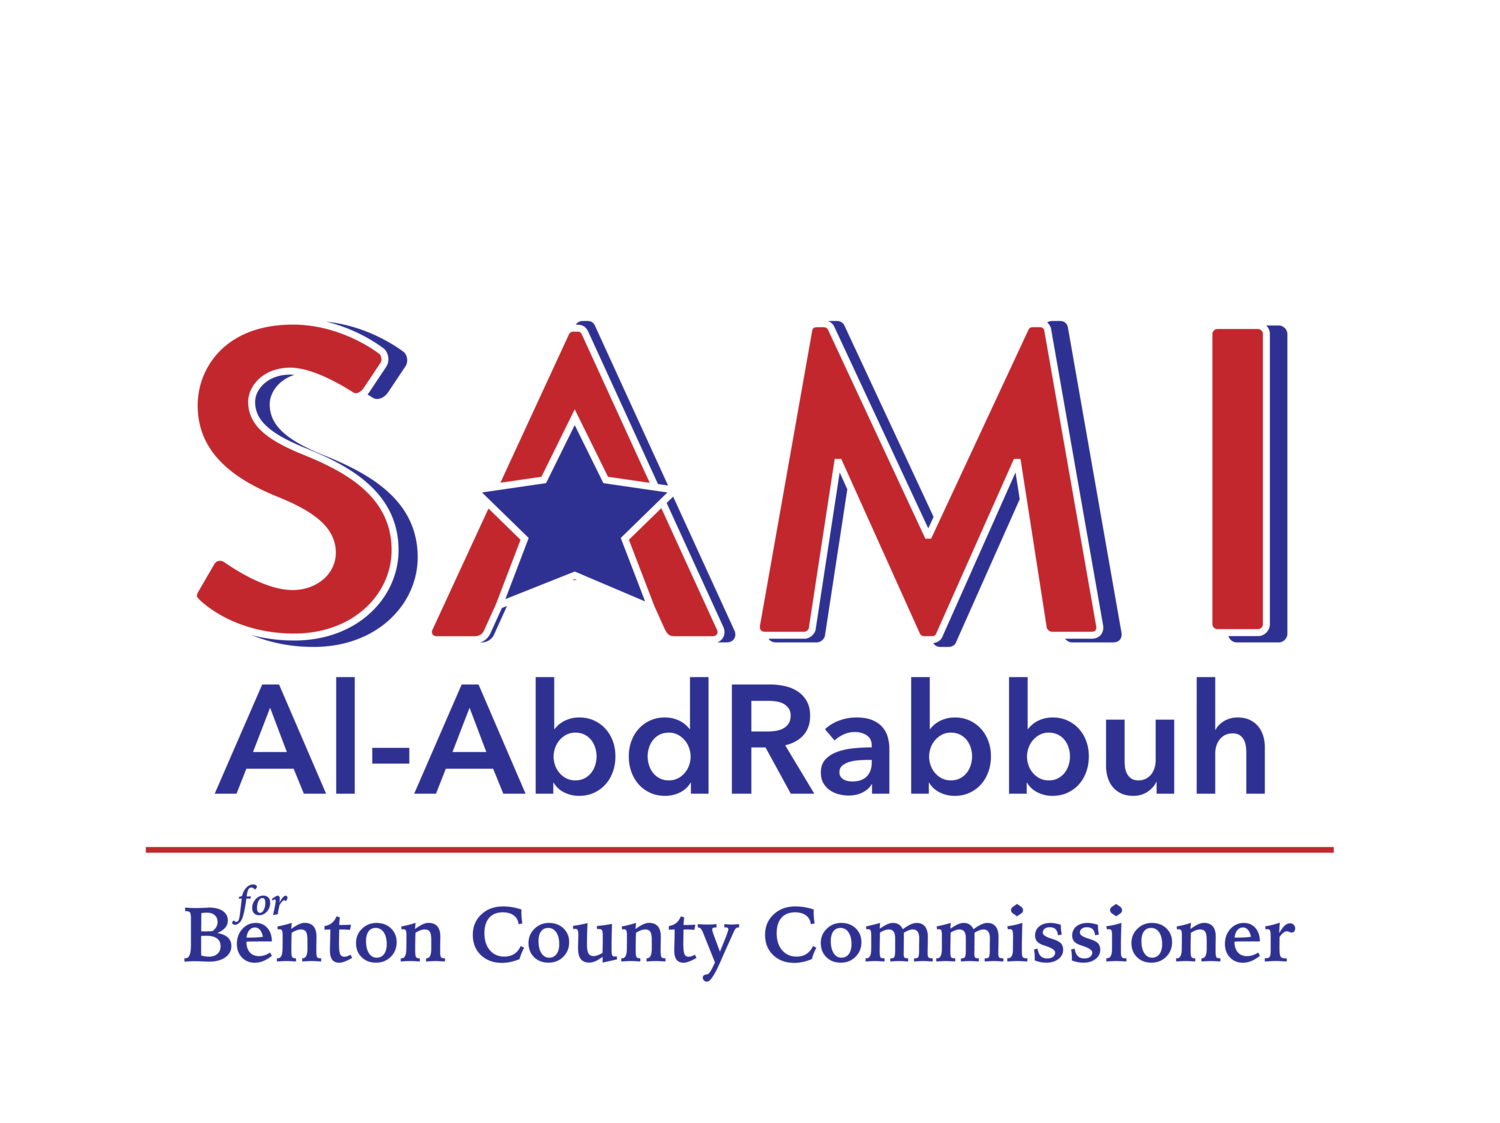 Sami For Benton County Commissioner